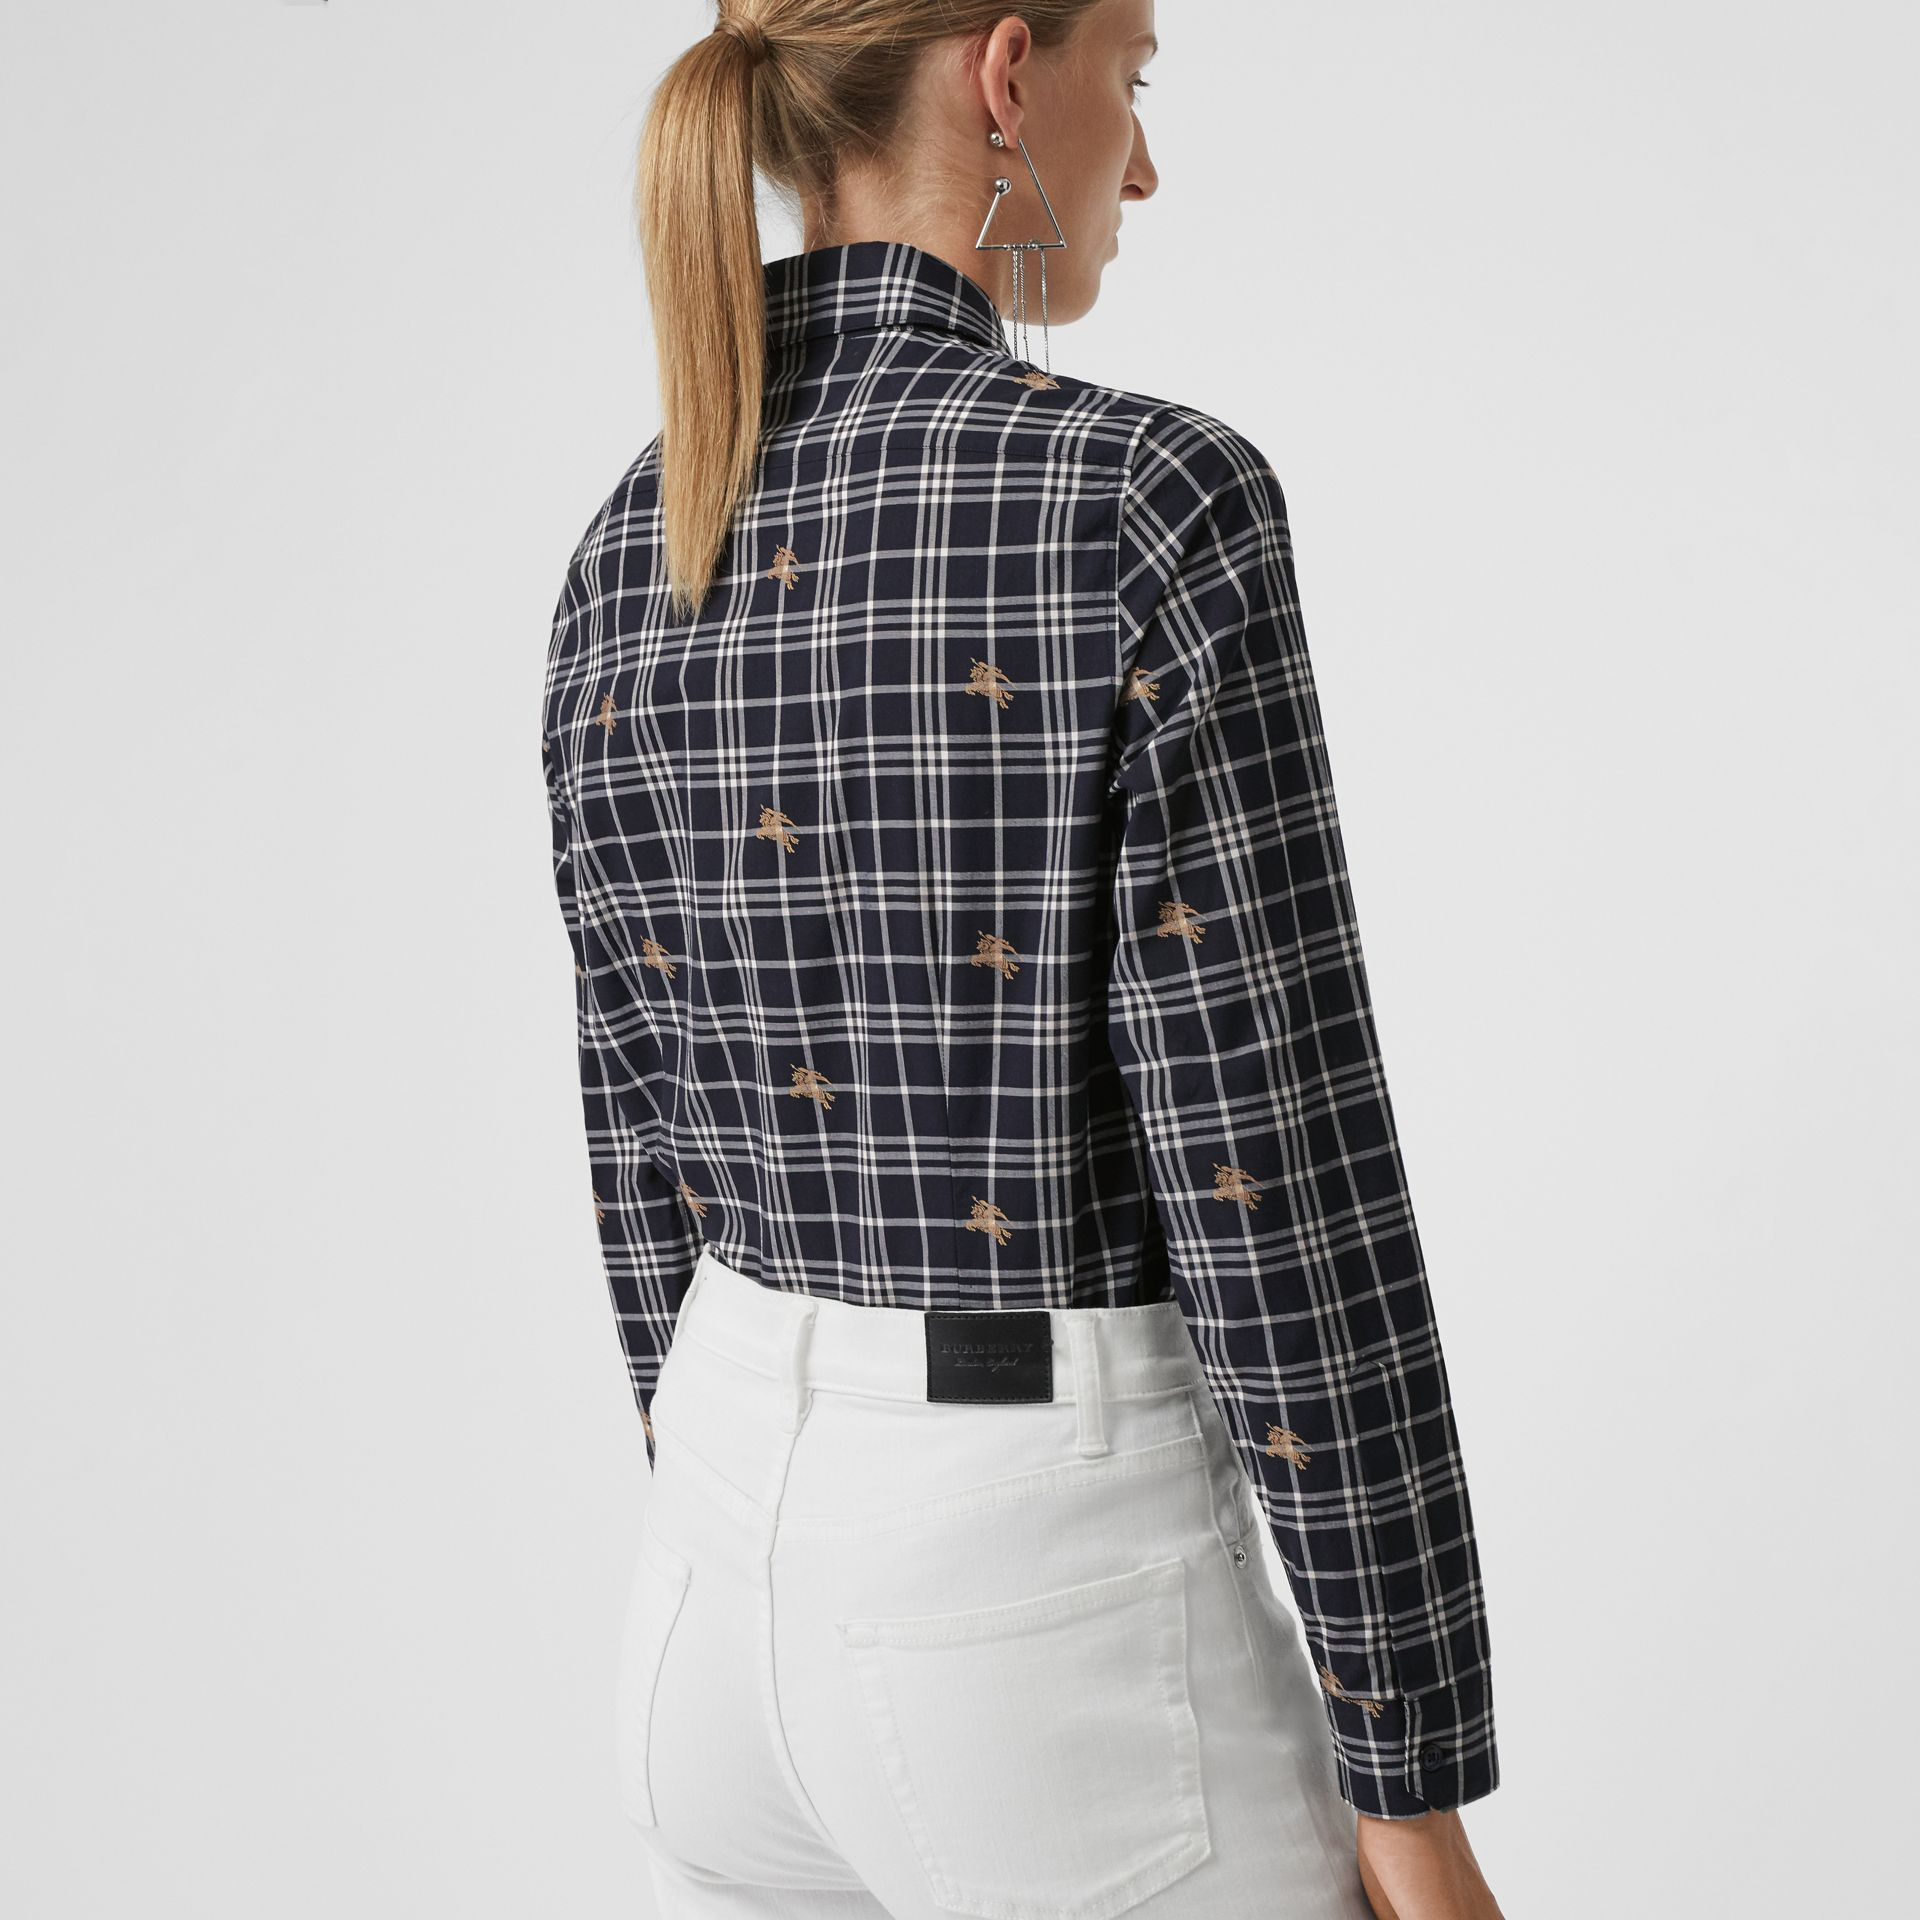 Equestrian Knight Check Cotton Shirt in Navy - Women | Burberry Australia - gallery image 2